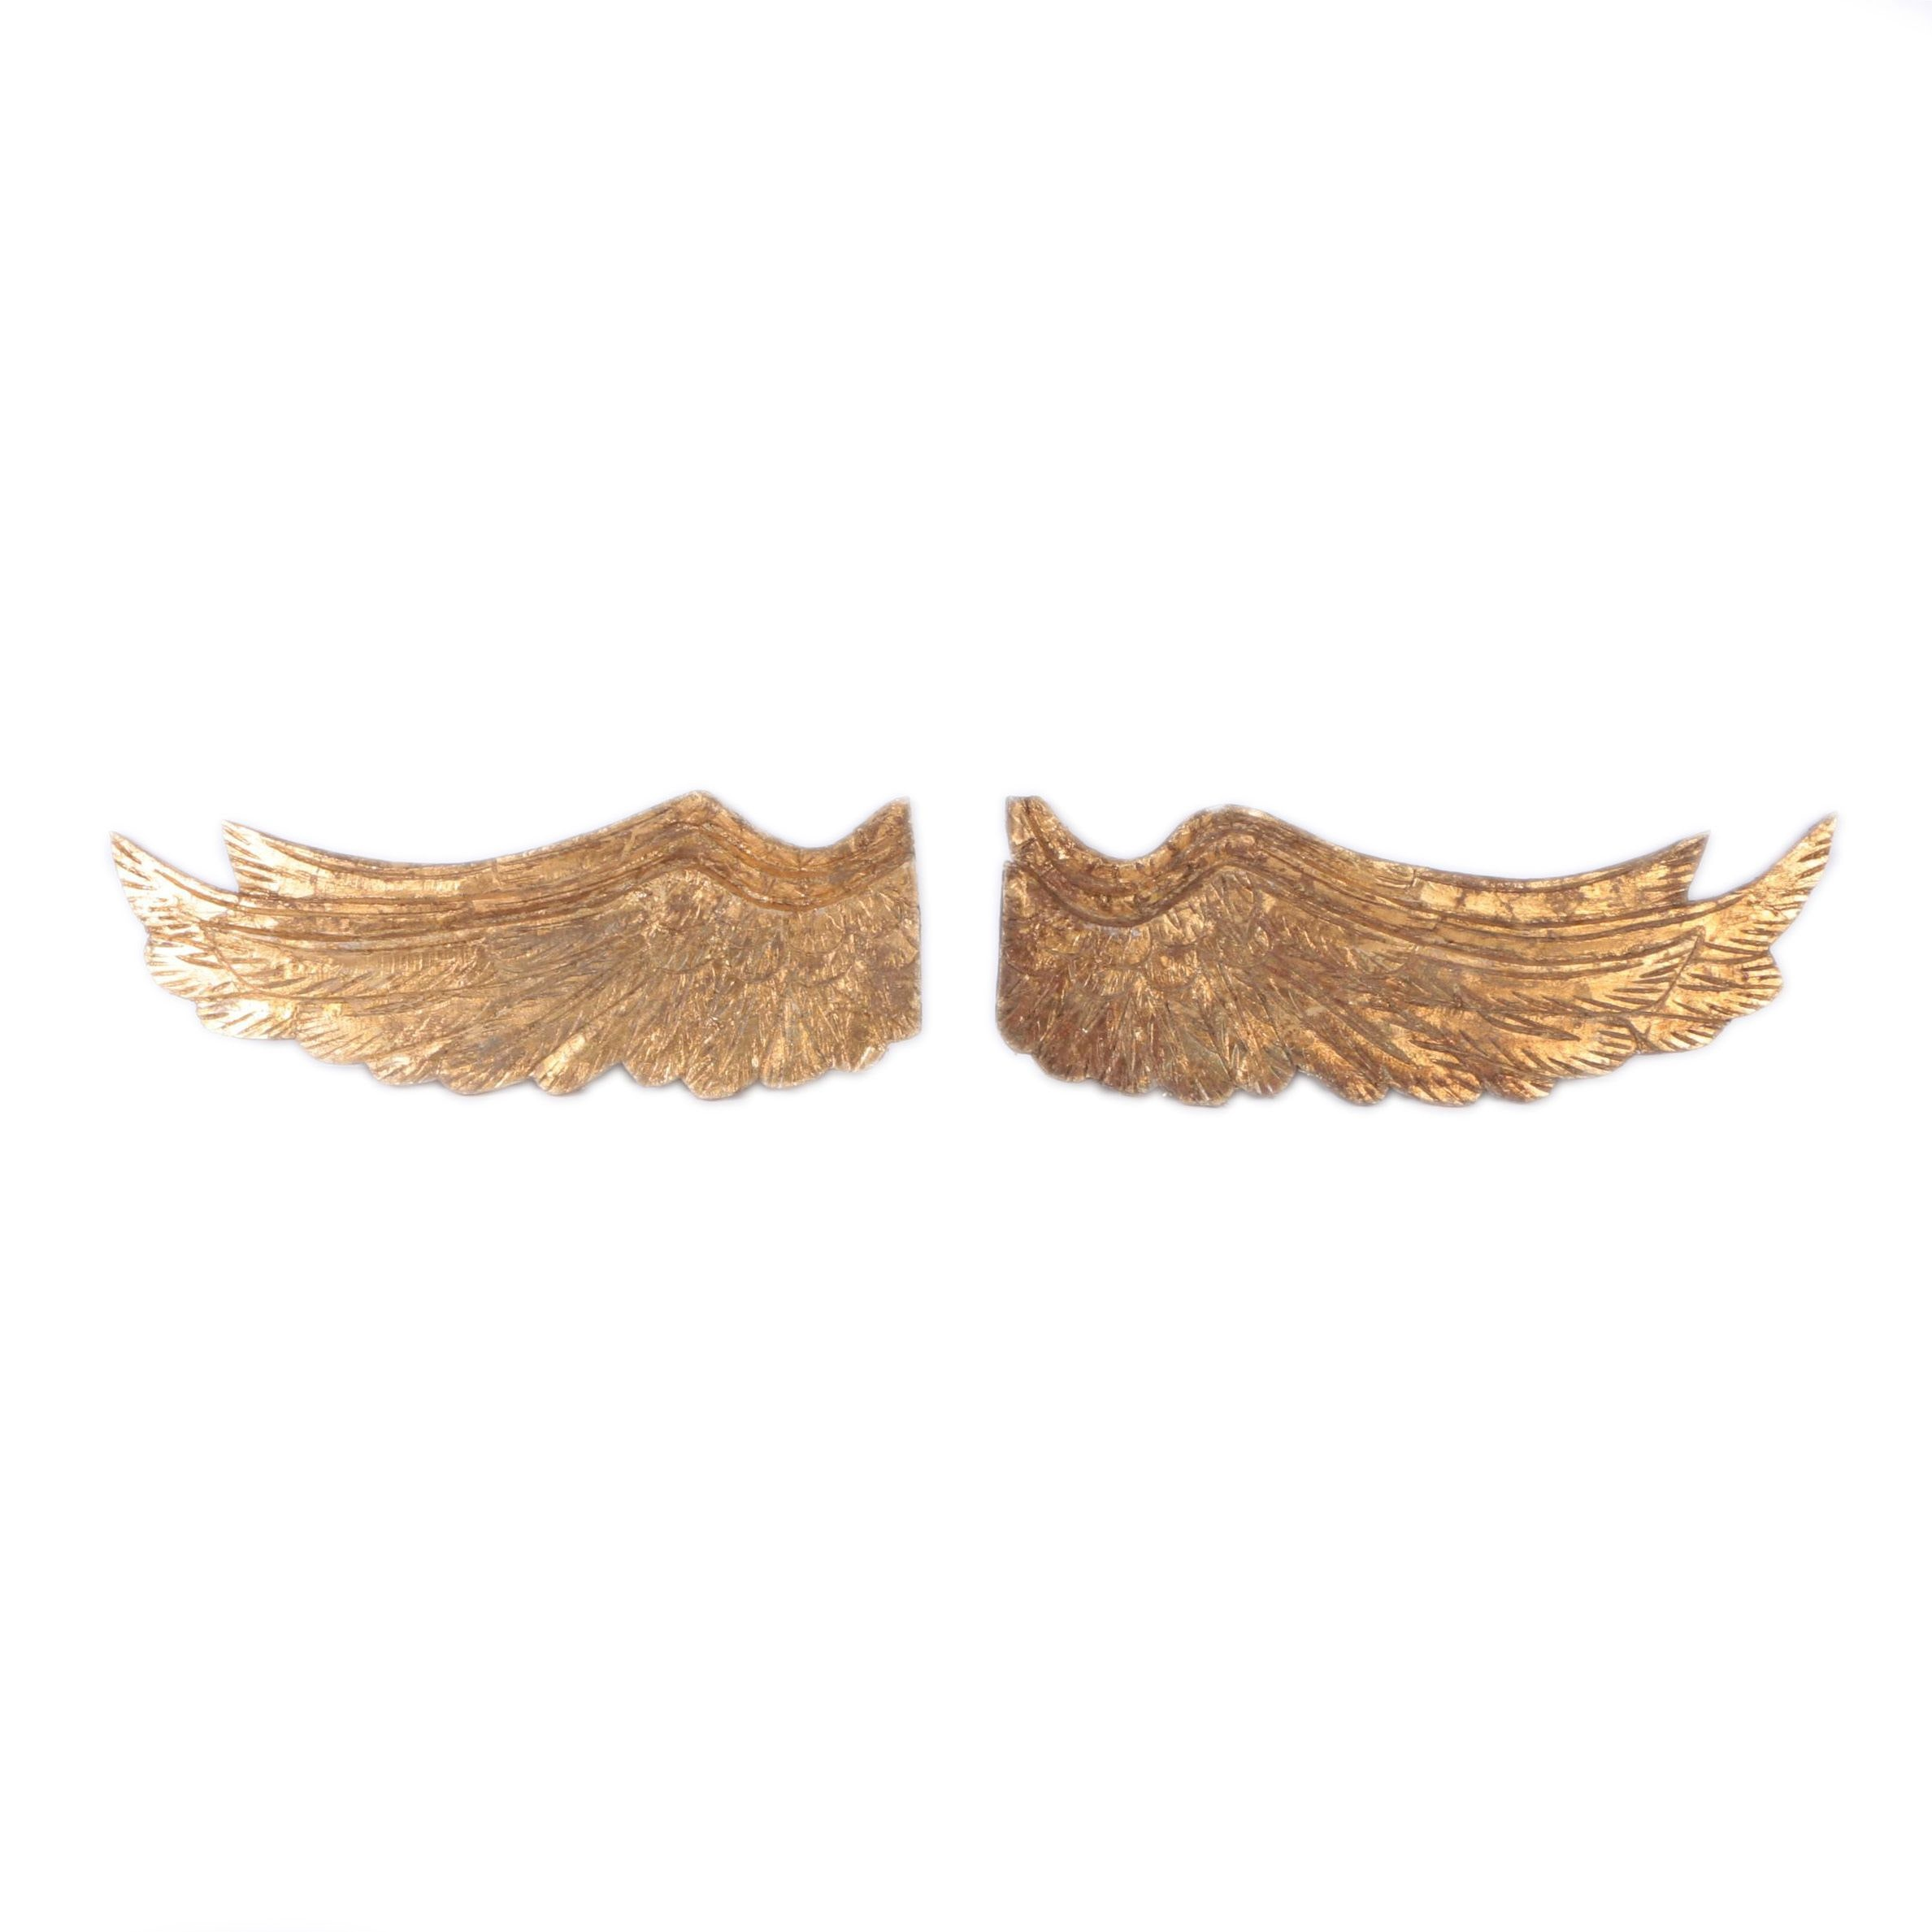 Gold Foil Decorative Wooden Wings